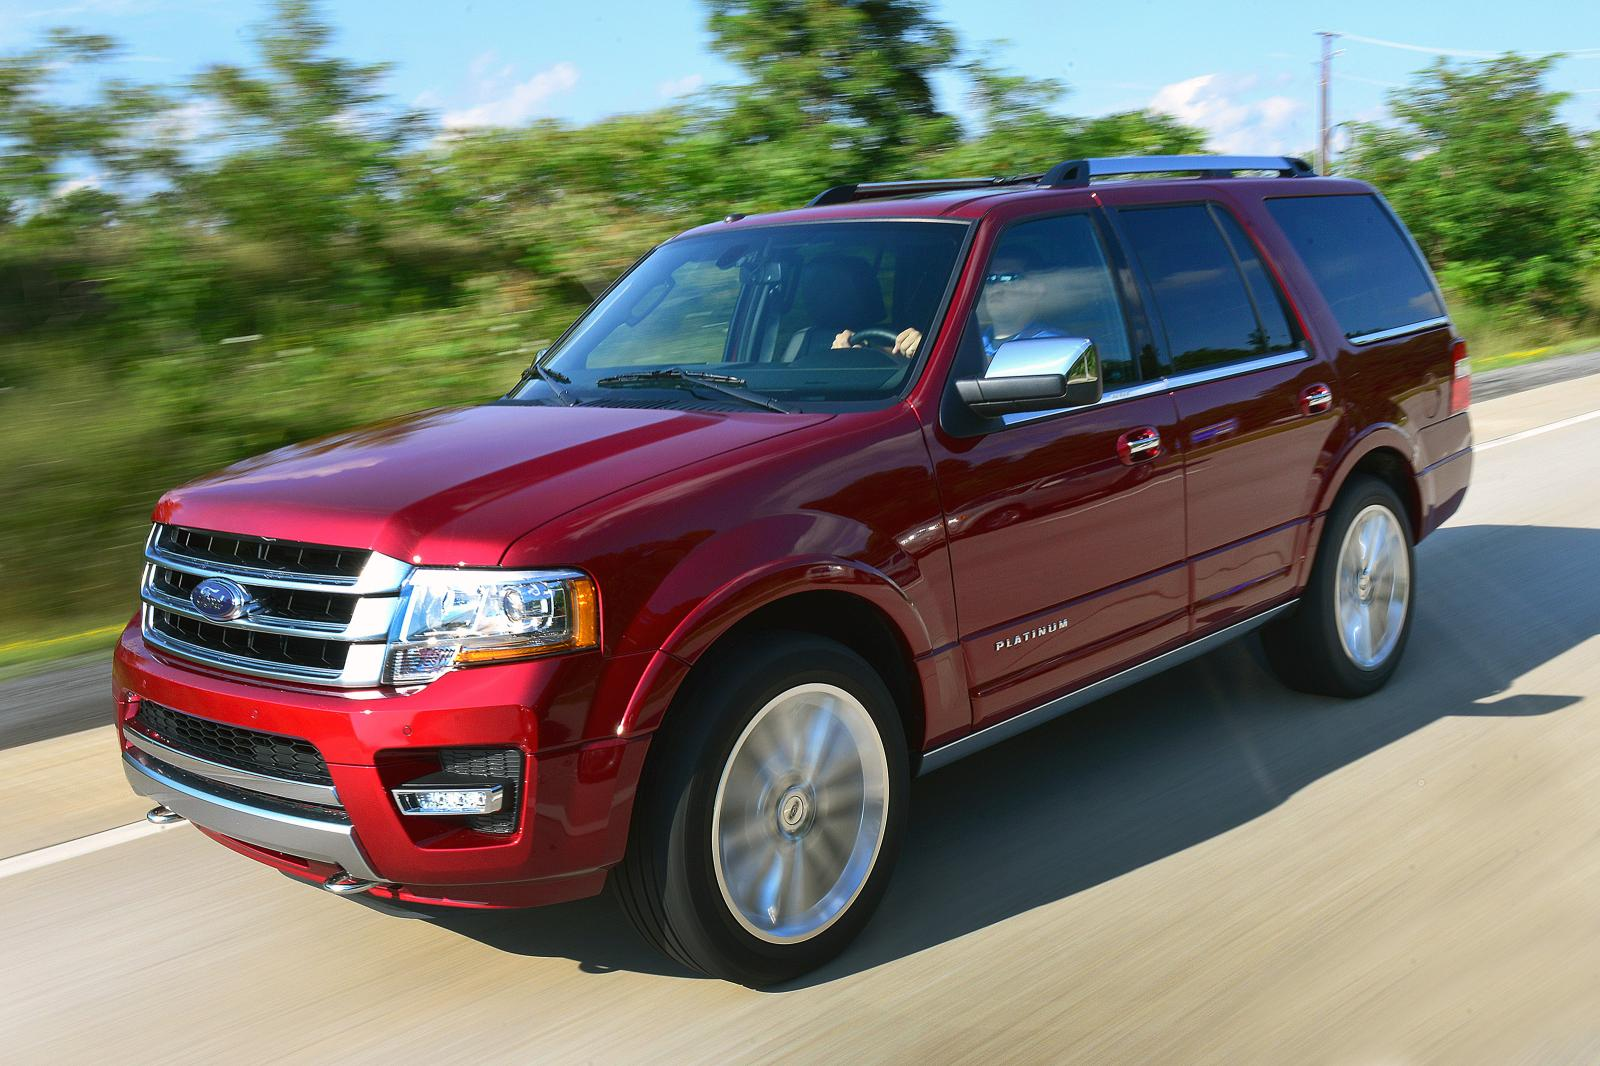 Ford Expedition 2015 Black 2015 Ford Expedition Photo